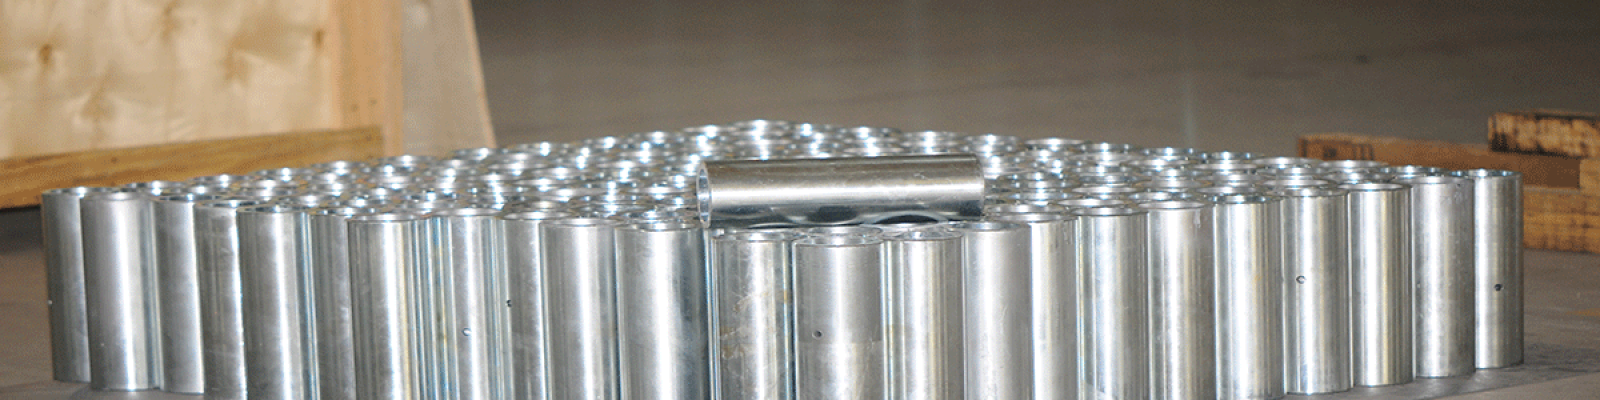 Steel-components